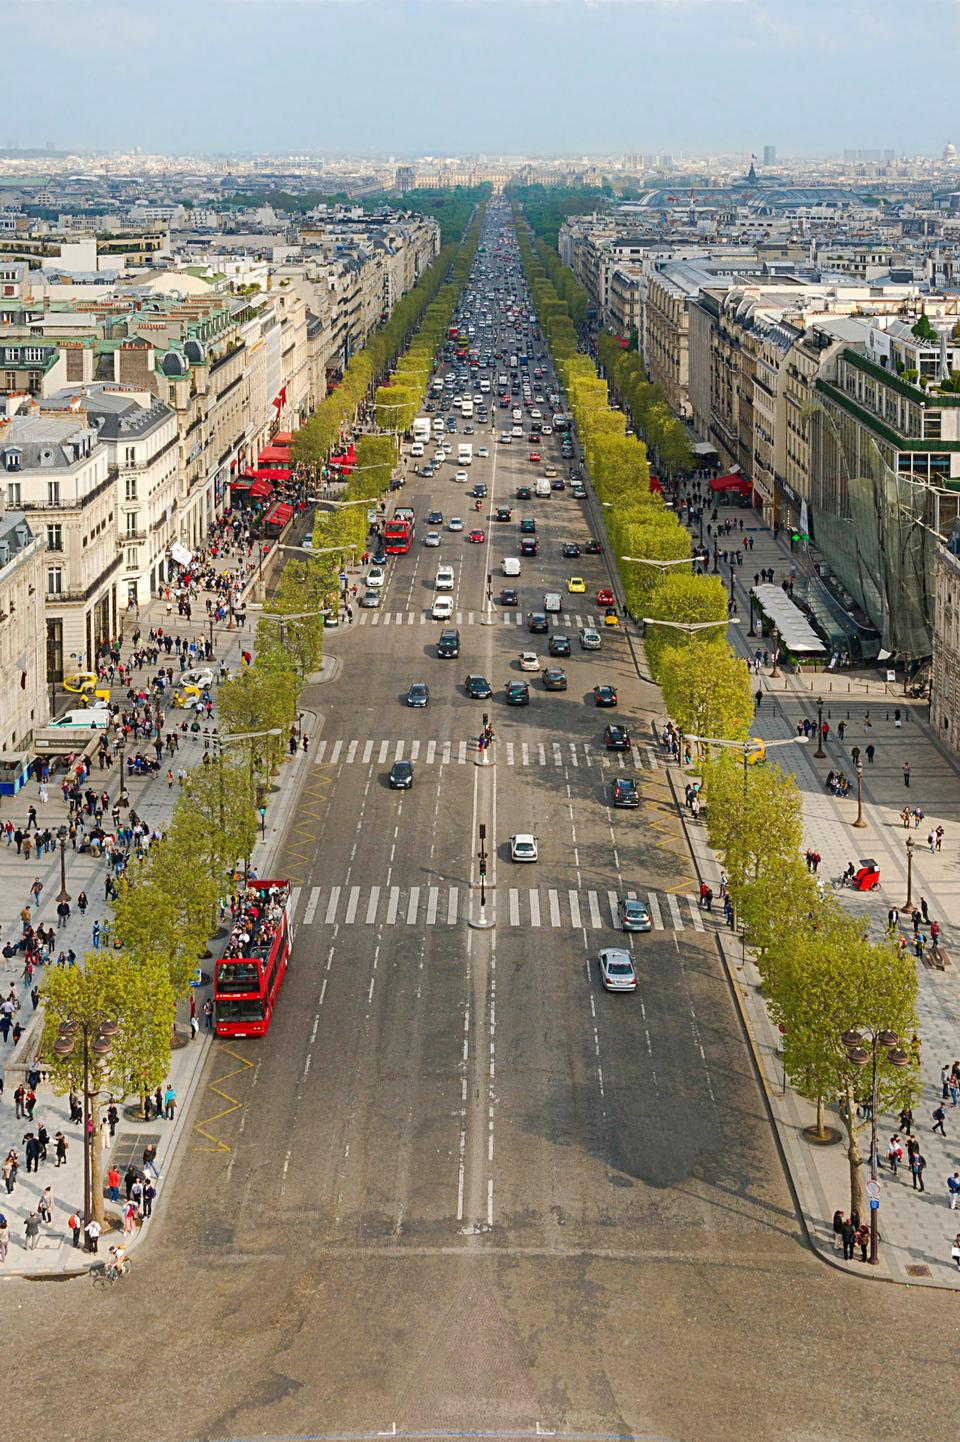 Free download high resolution image - free image free photo free stock image public domain picture  Paris, France